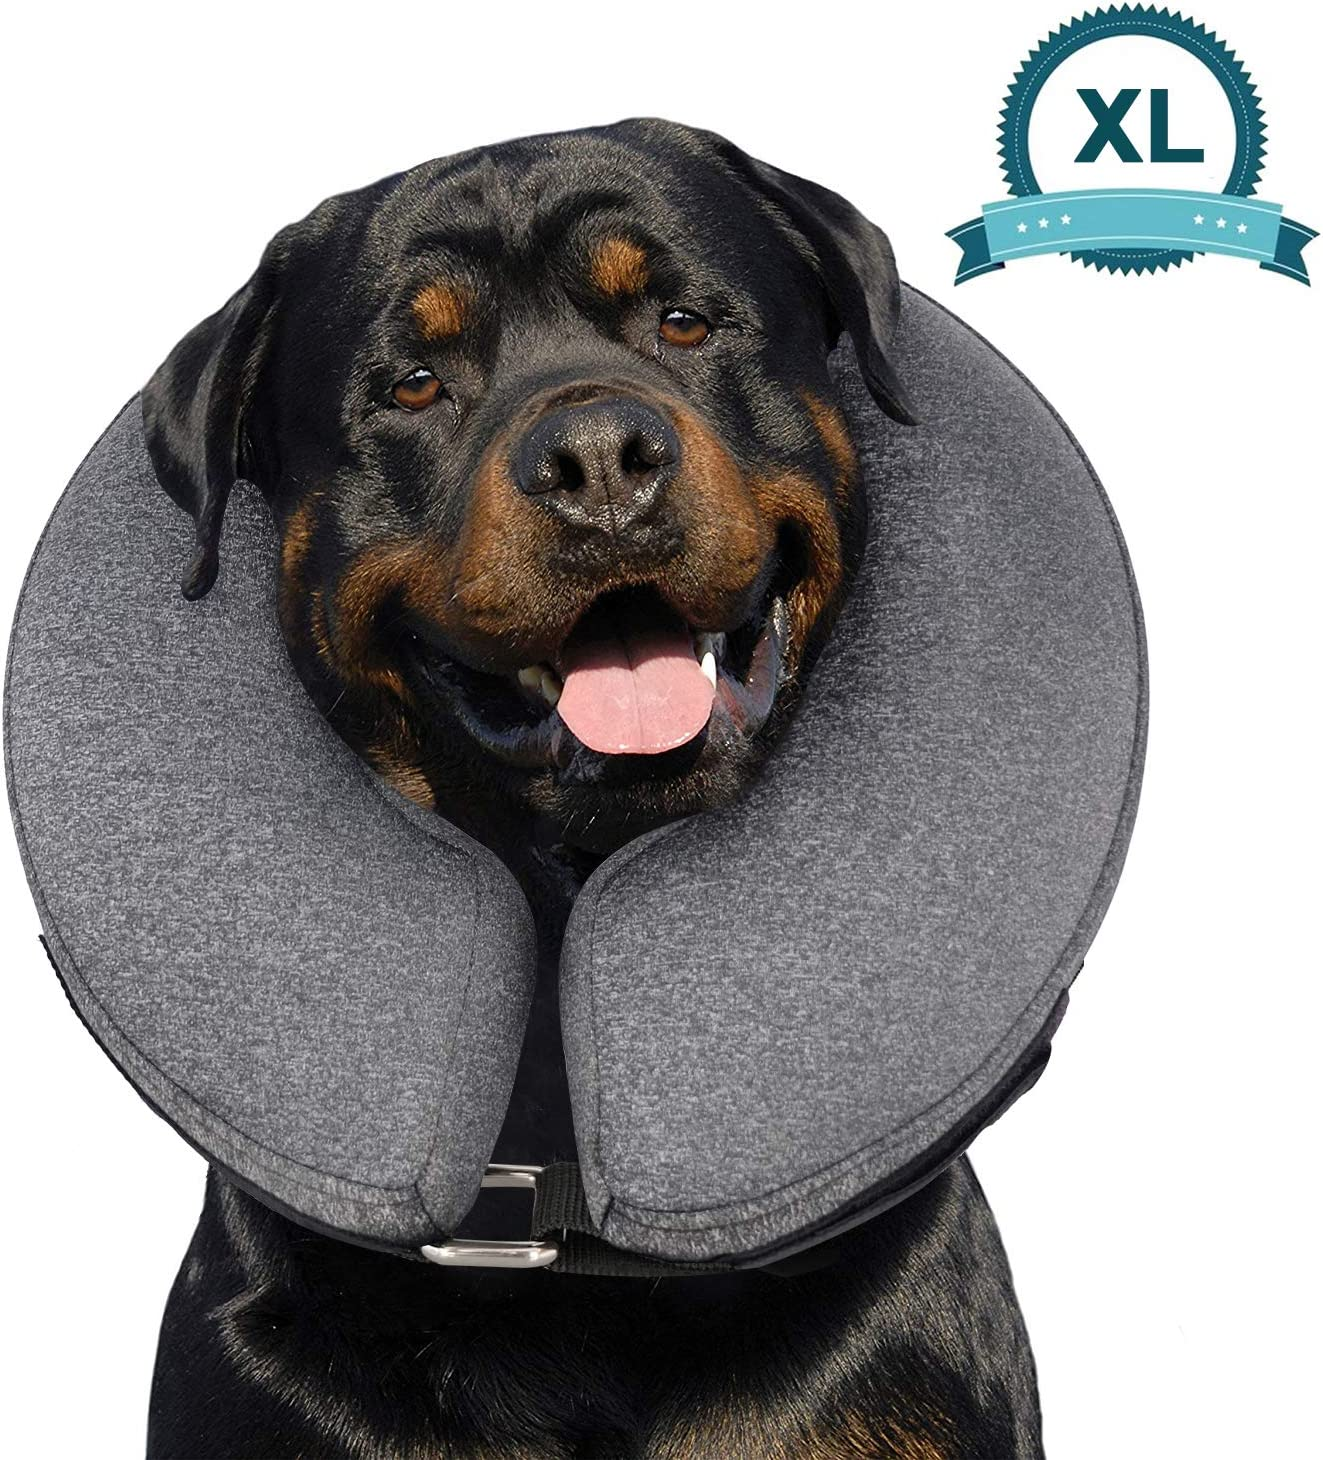 Inflatable dog cones